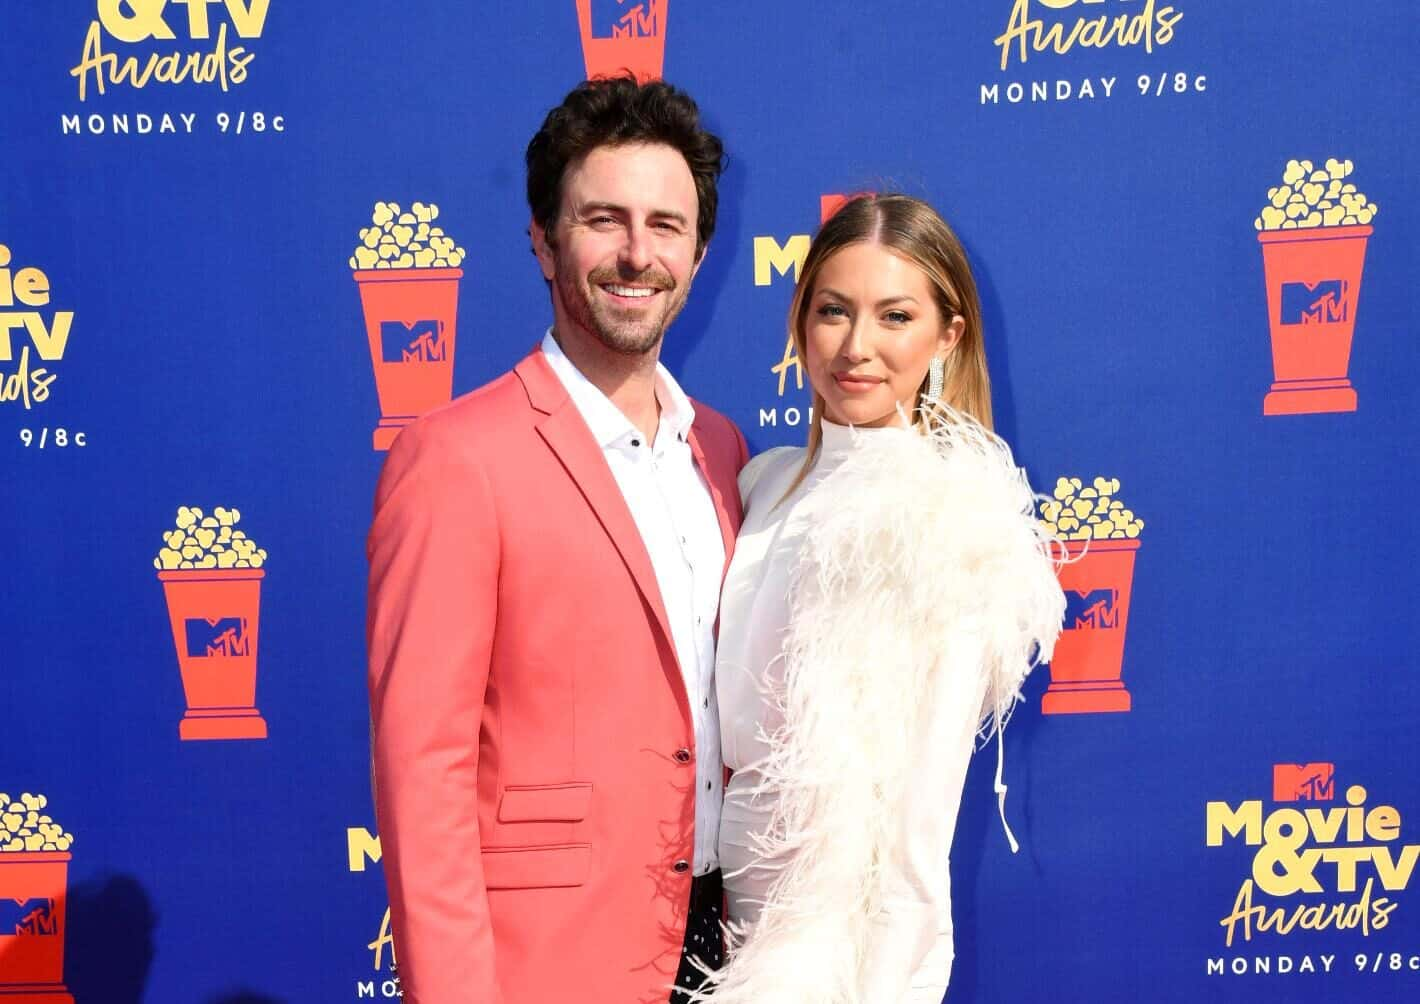 Vanderpump Rules' Stassi Schroeder and Beau Clark Return to Social Media After Leaving Their Los Angeles Home and Embarking on a Remote Getaway, See the First Photo She Shared After Being Fired